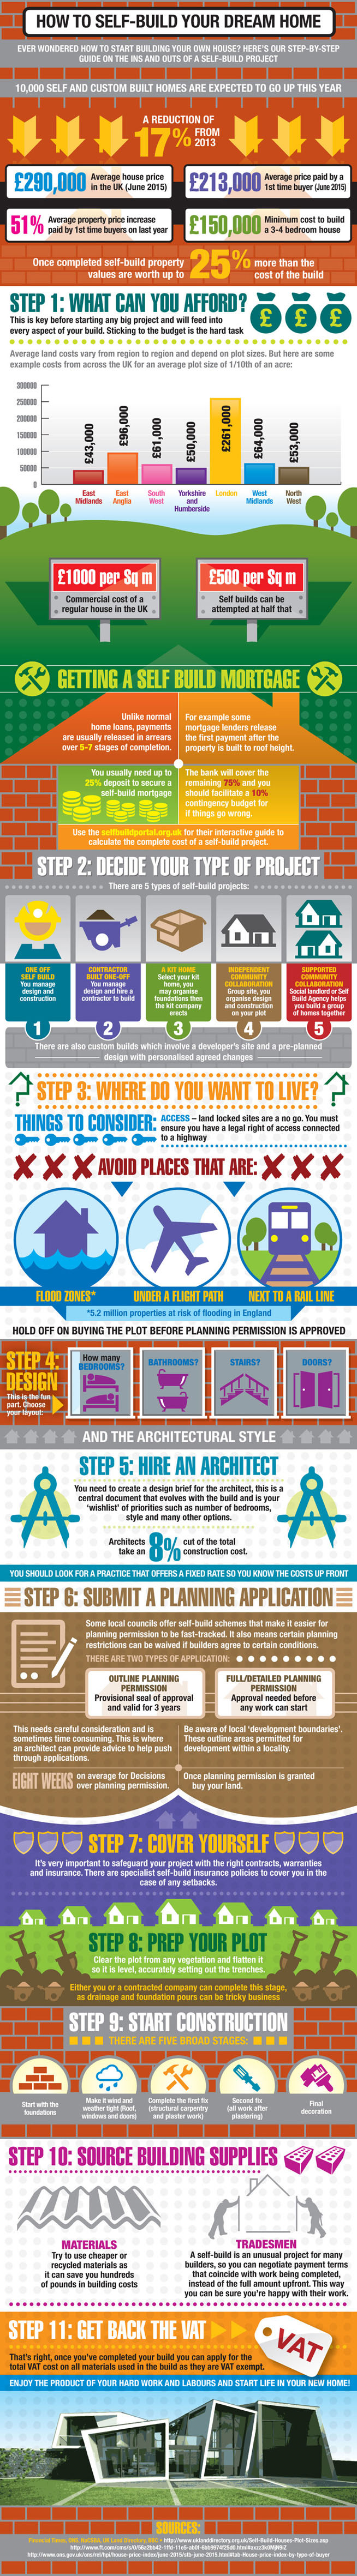 Self-build infographic